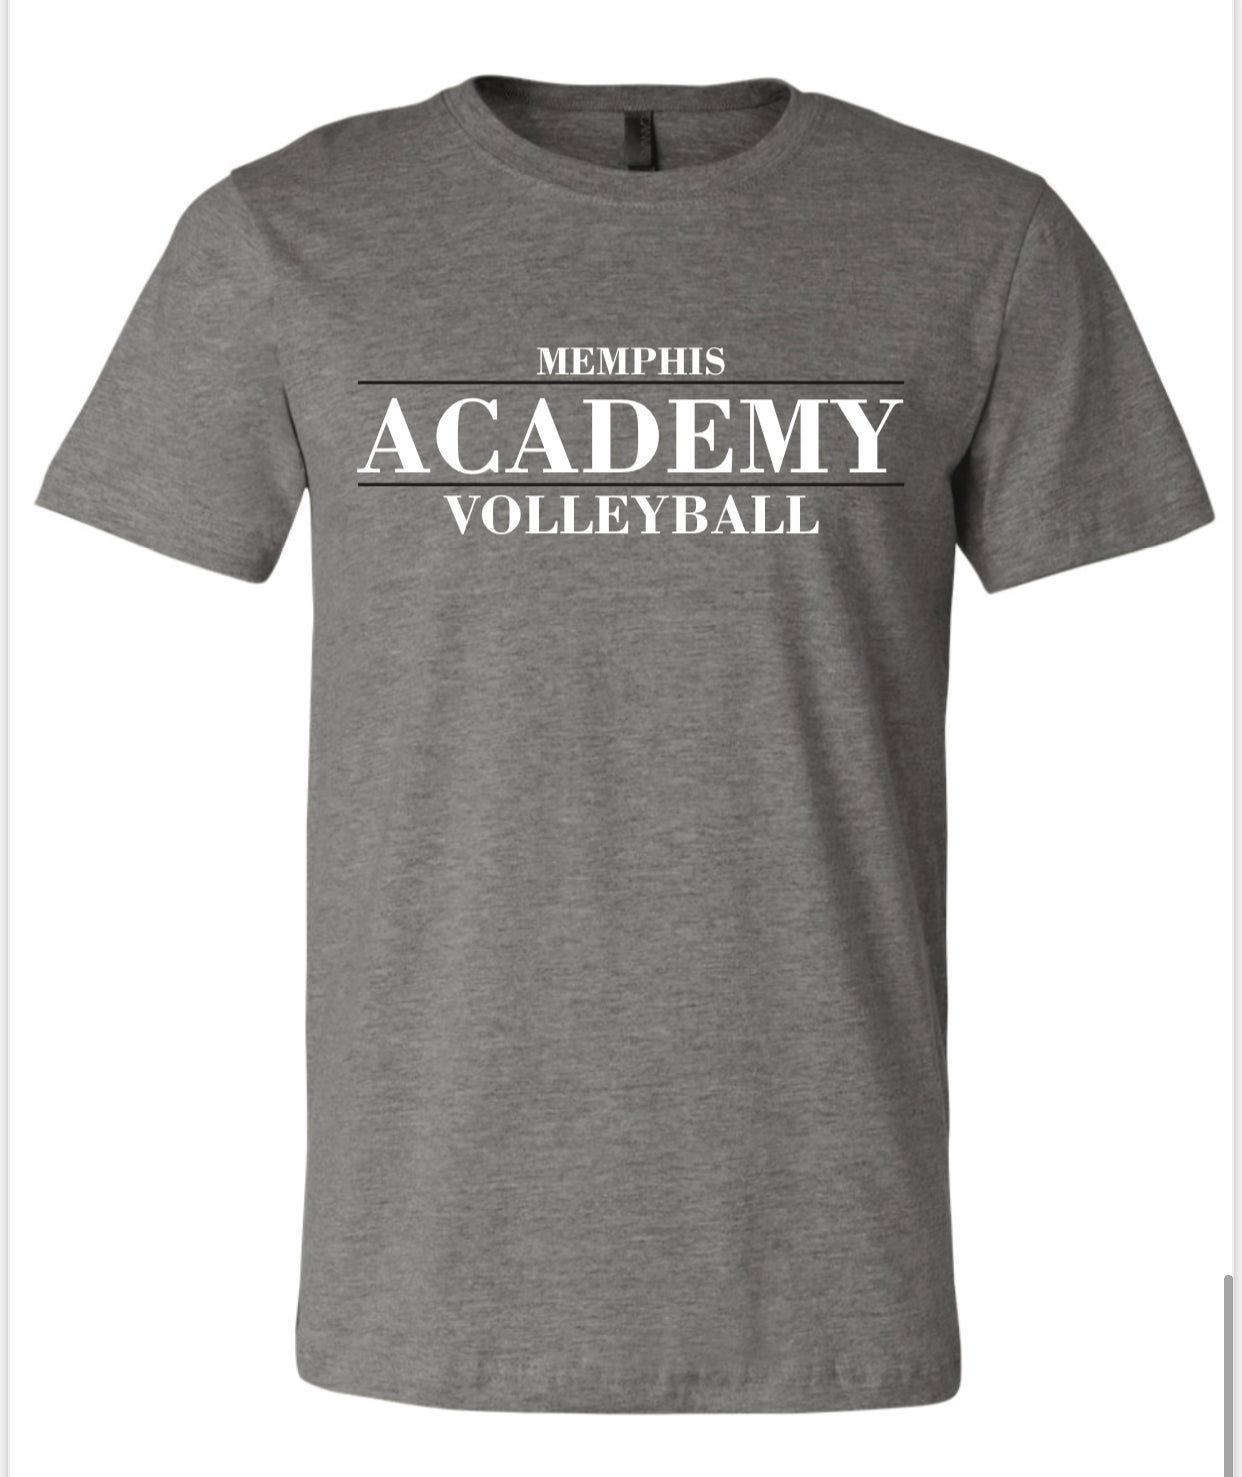 Image of Memphis Volleyball Academy STACK logo Tee (Available in Mutliple Colors)